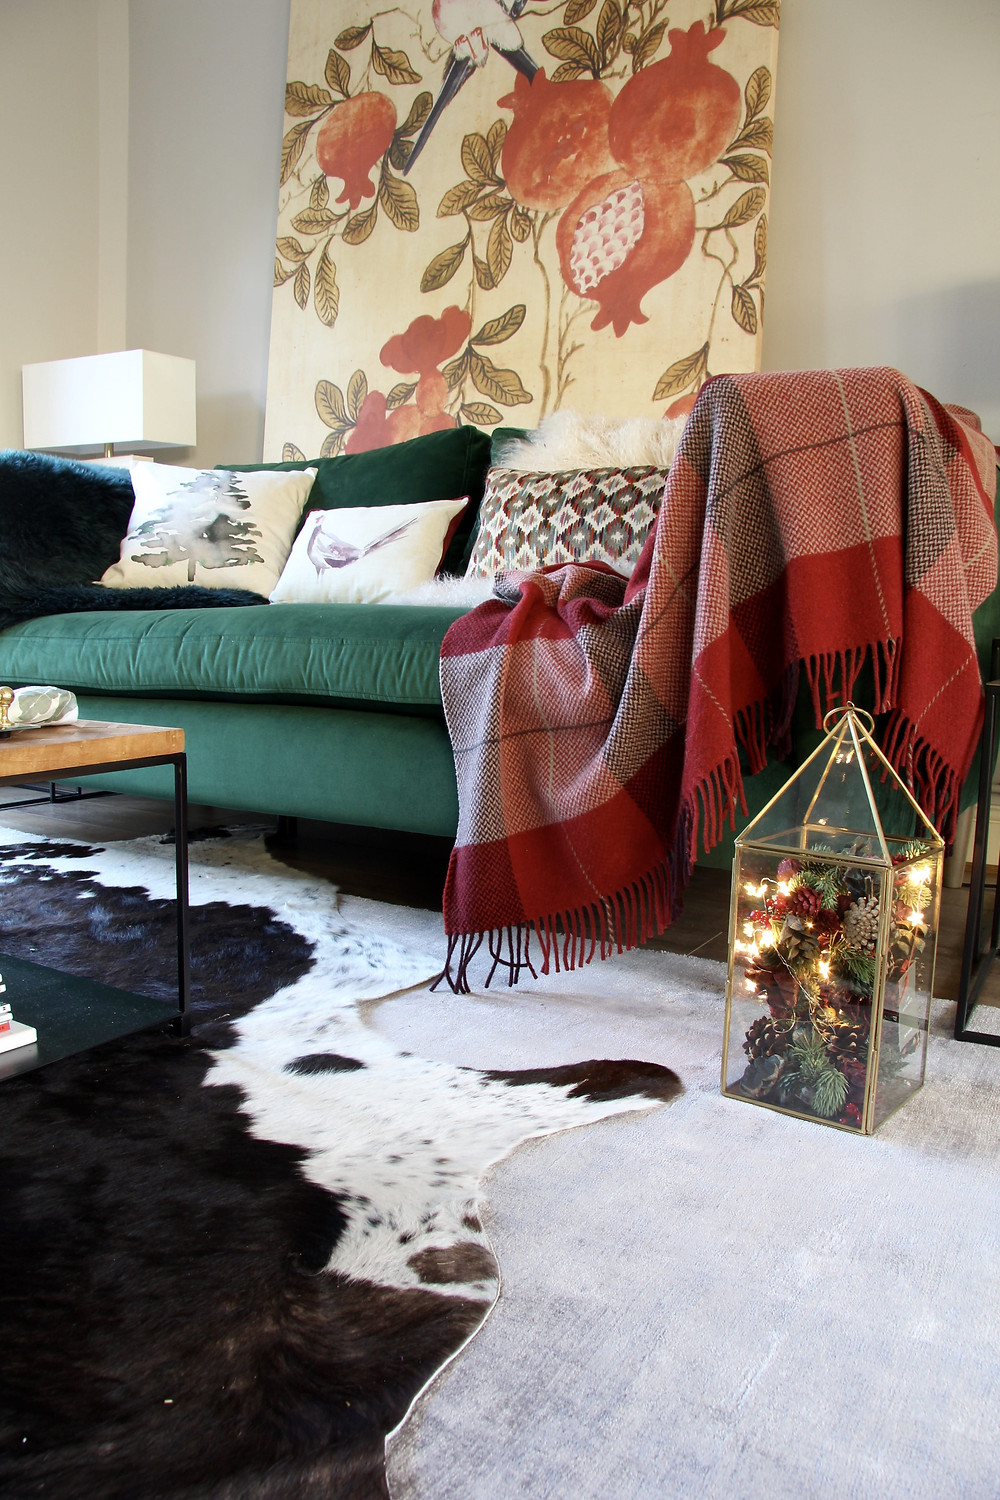 Living room decor ideas for Christmas. Highland Check 100% Wool Throw over the green EDEN sofa from the Sofa Workshop. Grey rug with cowhide over it.